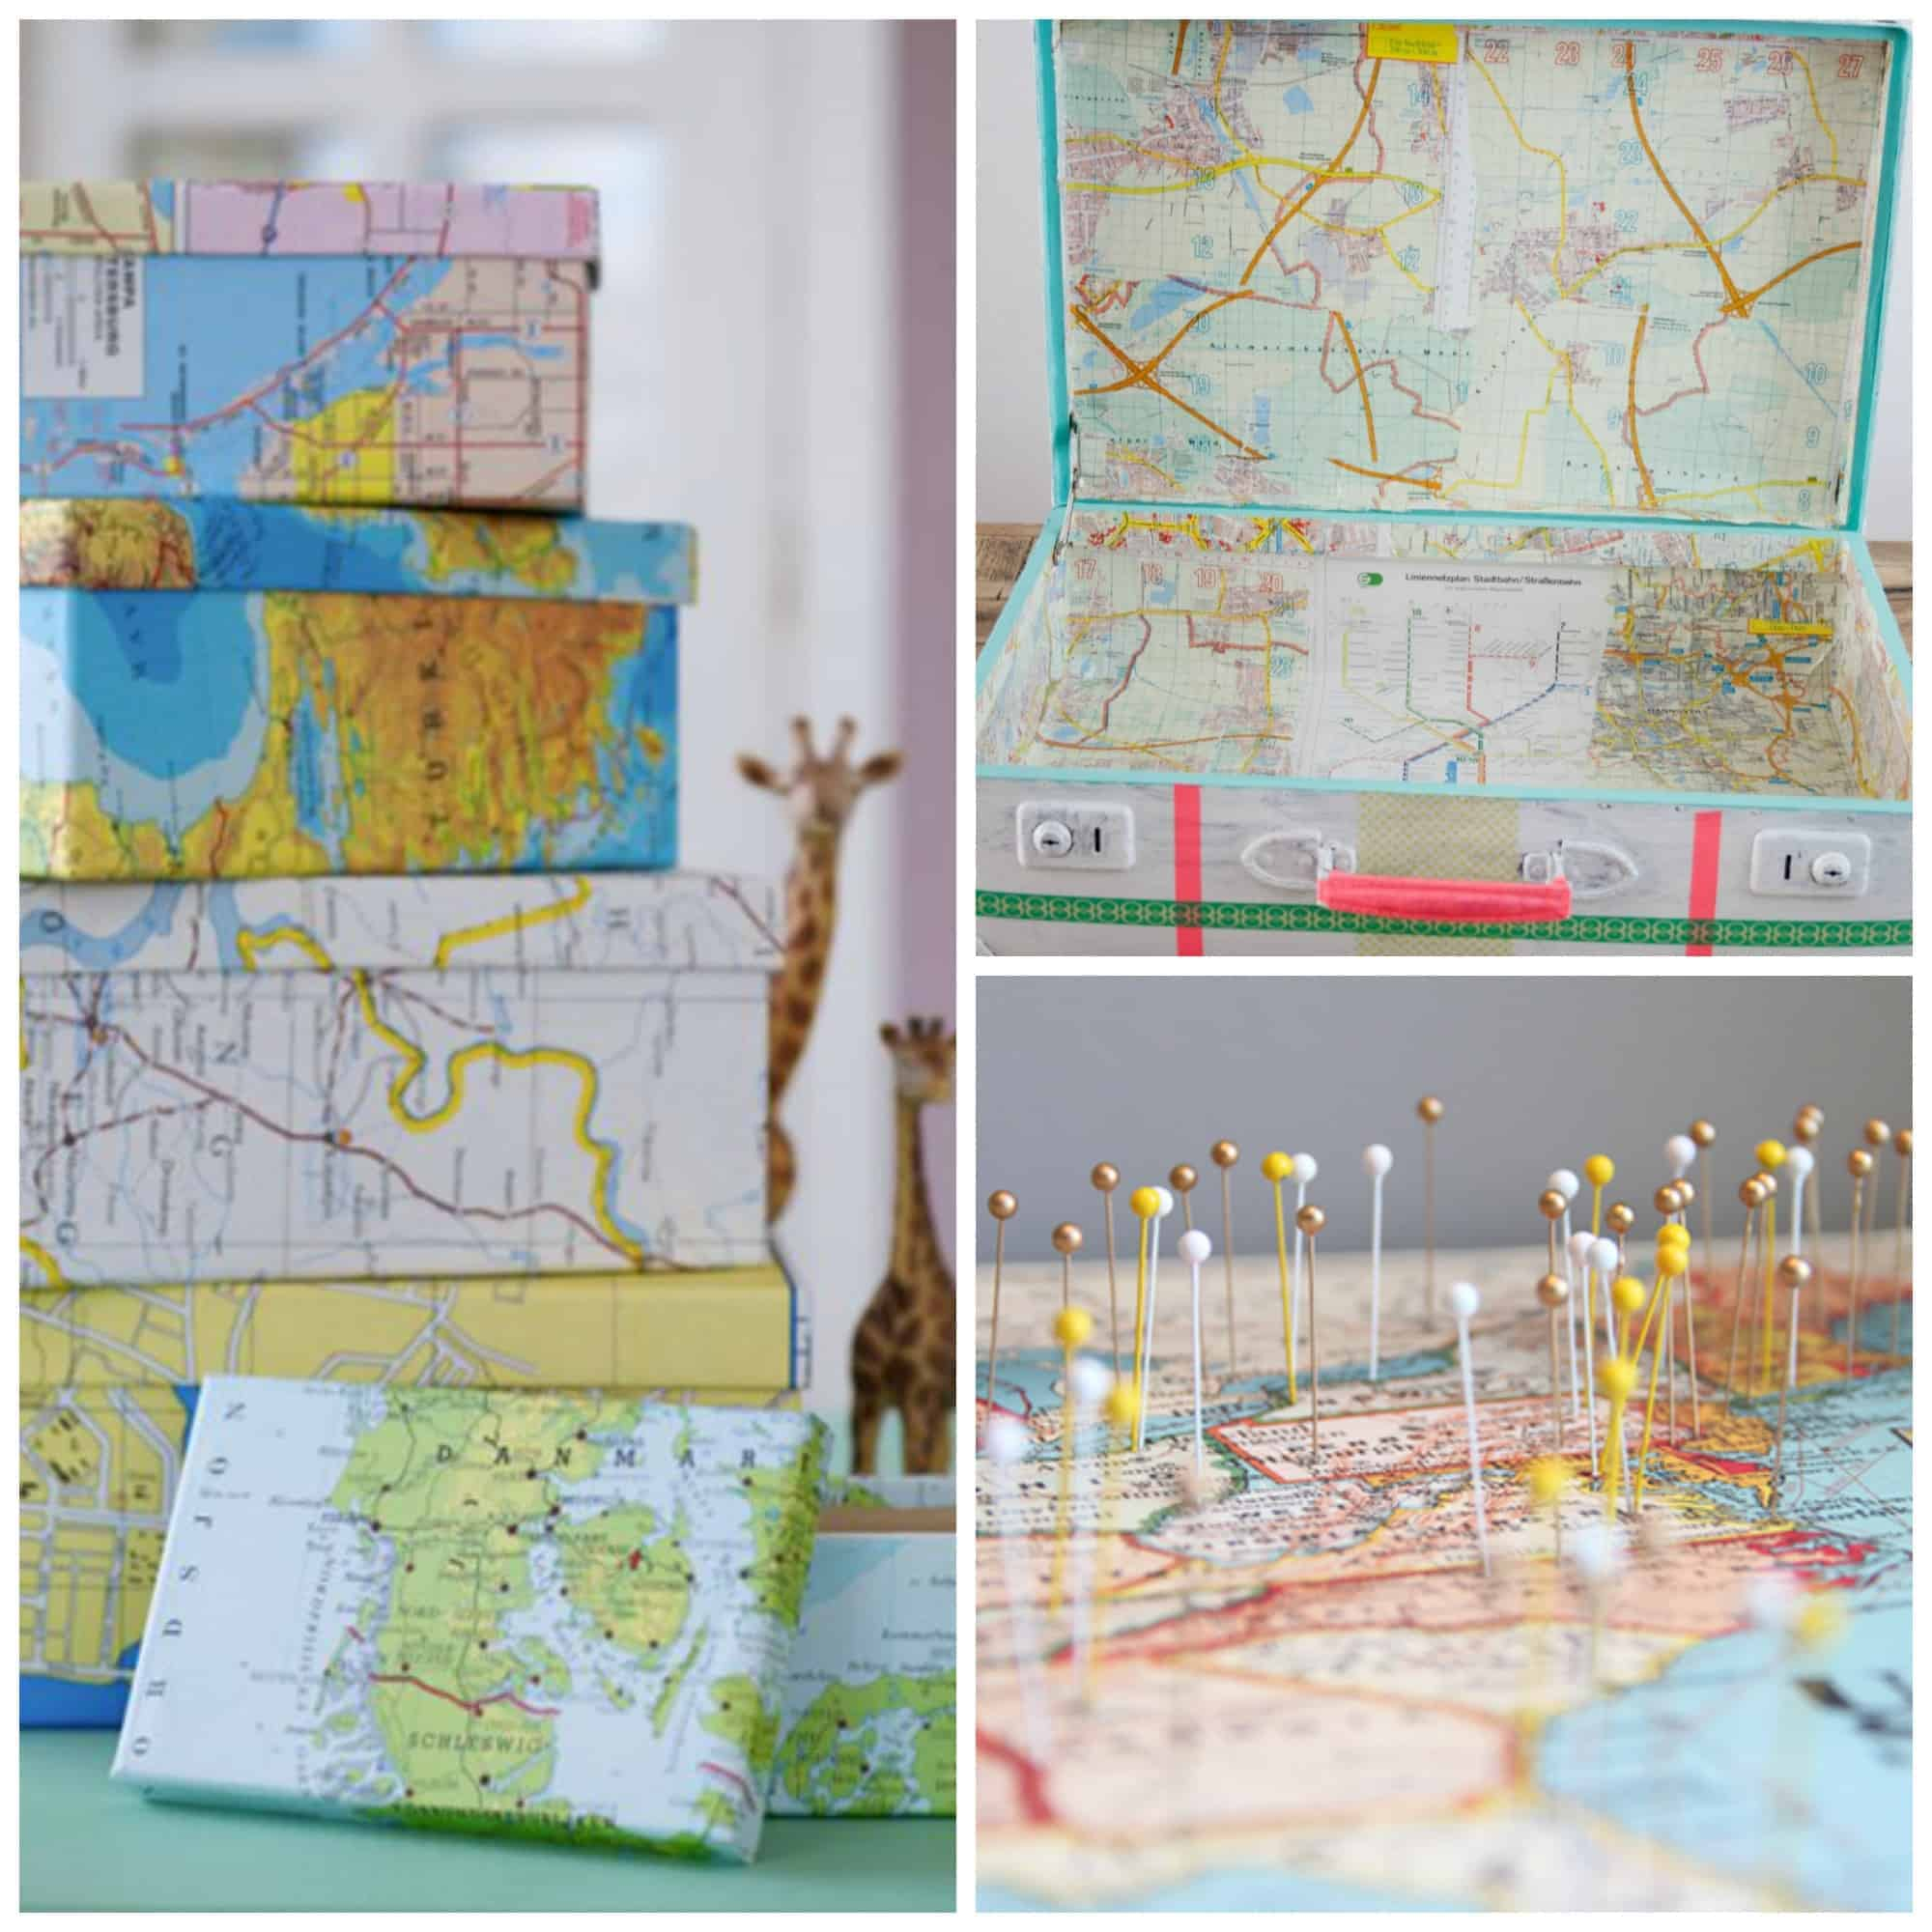 image decorate. I Have Found So Many Wonderful, Creative Projects Some Amazing Bloggers Created With Maps. Here Are 10 Brilliant Ways To Decorate Maps! Image